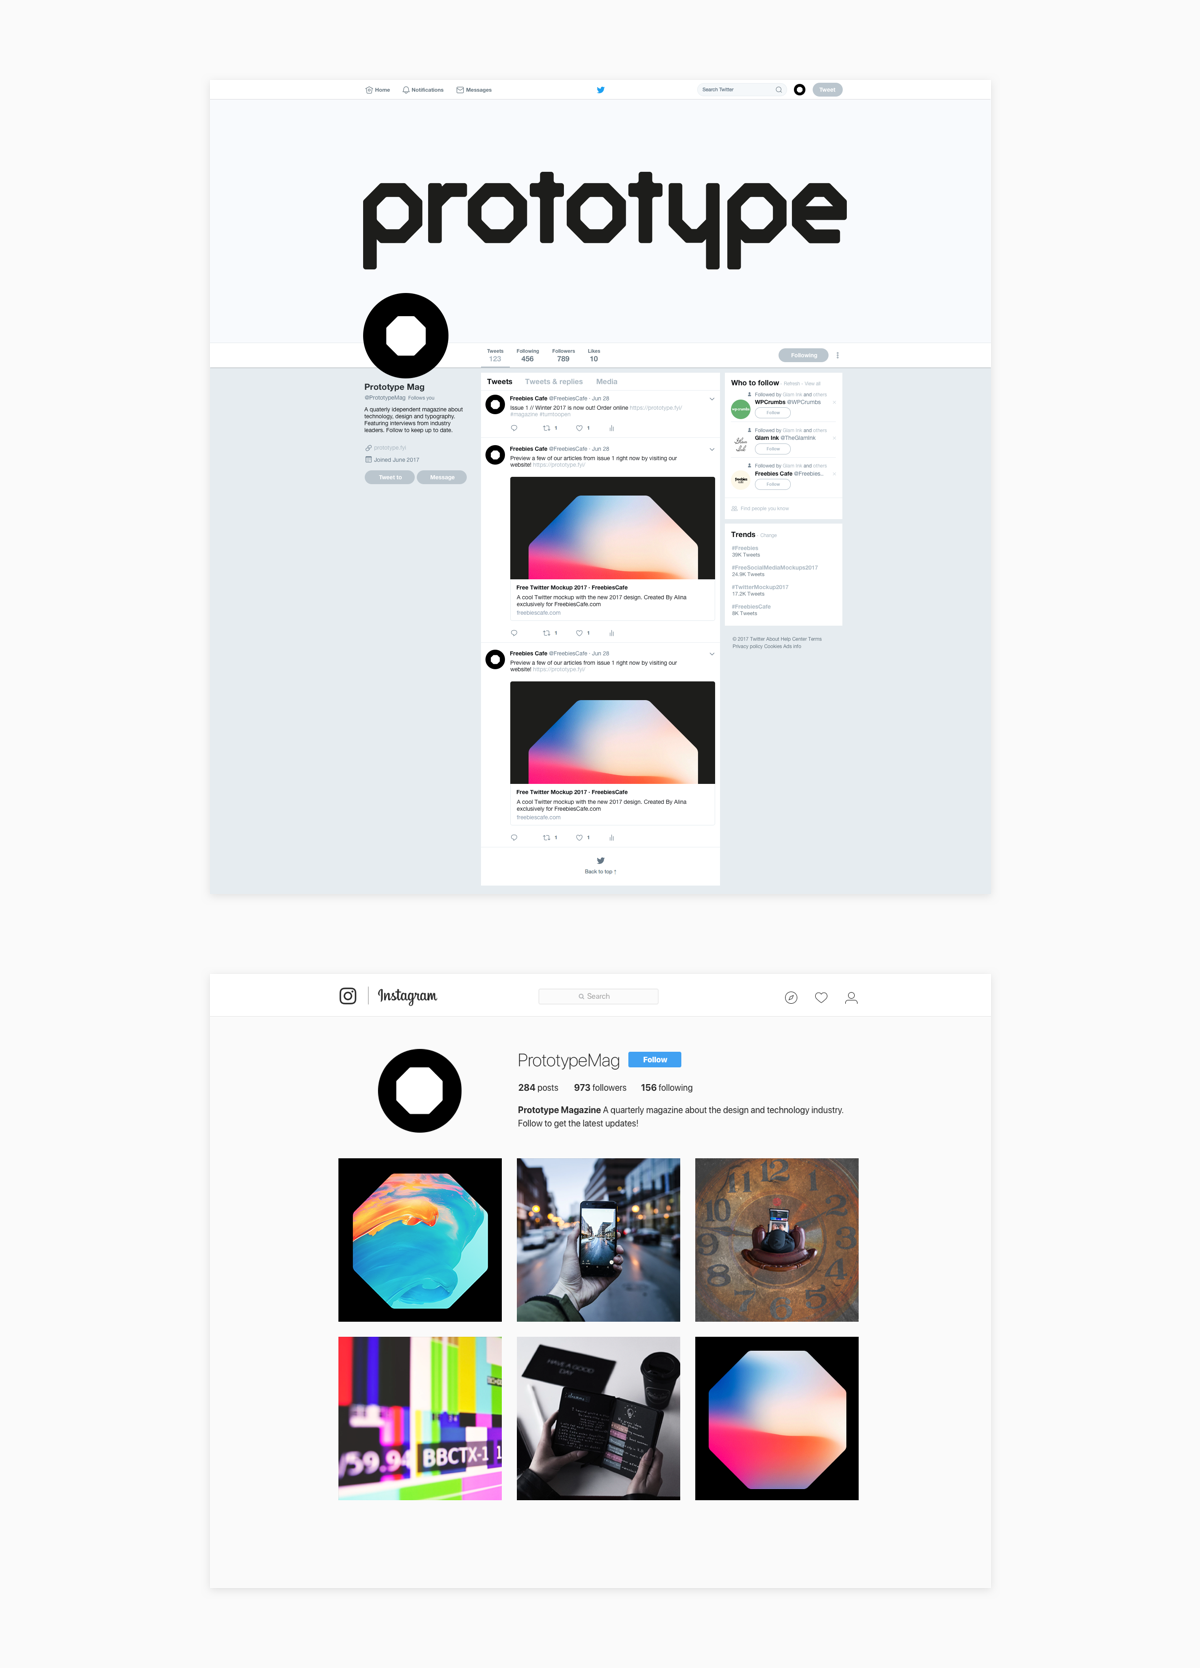 How the brand is presented on twitter and instagram